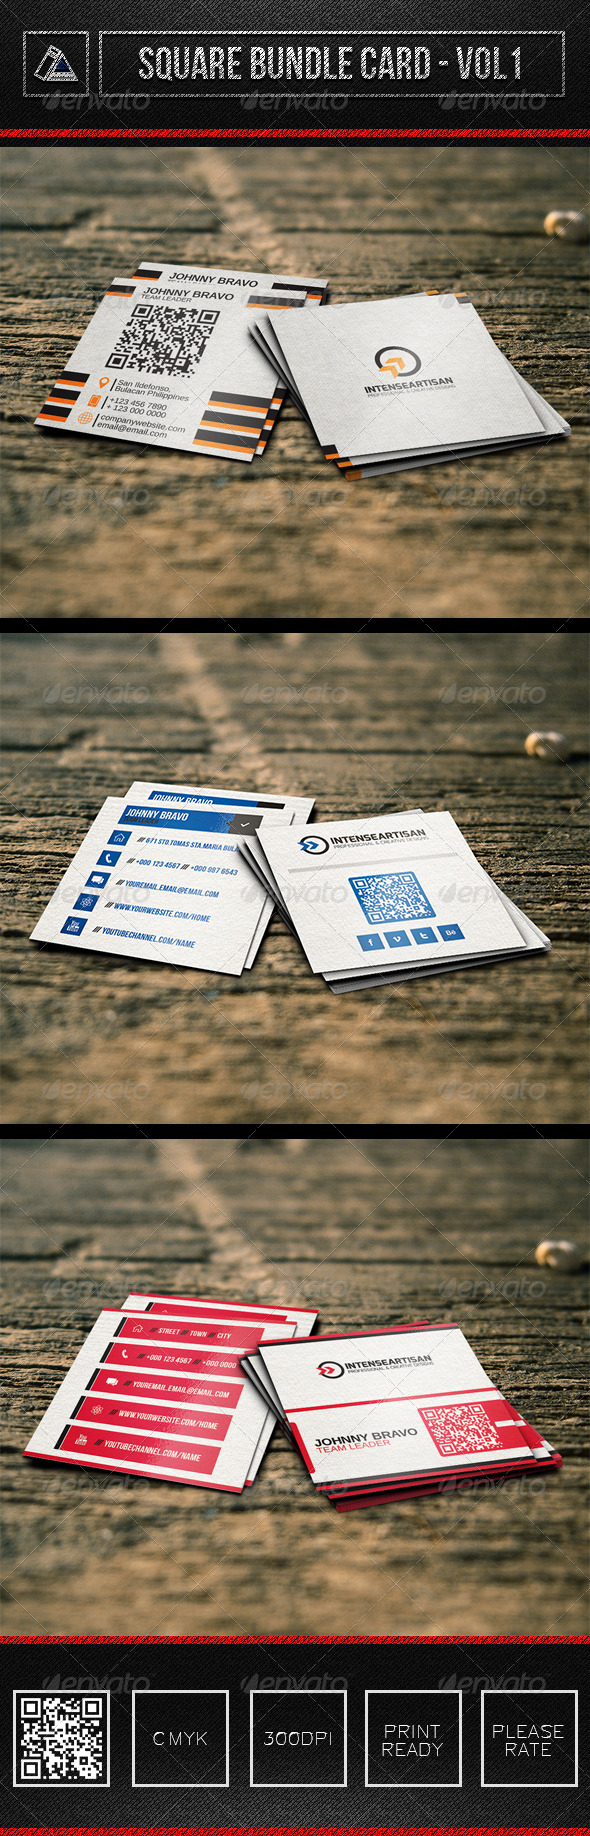 3in1 Square Bundle Card Vol1 - Corporate Business Cards